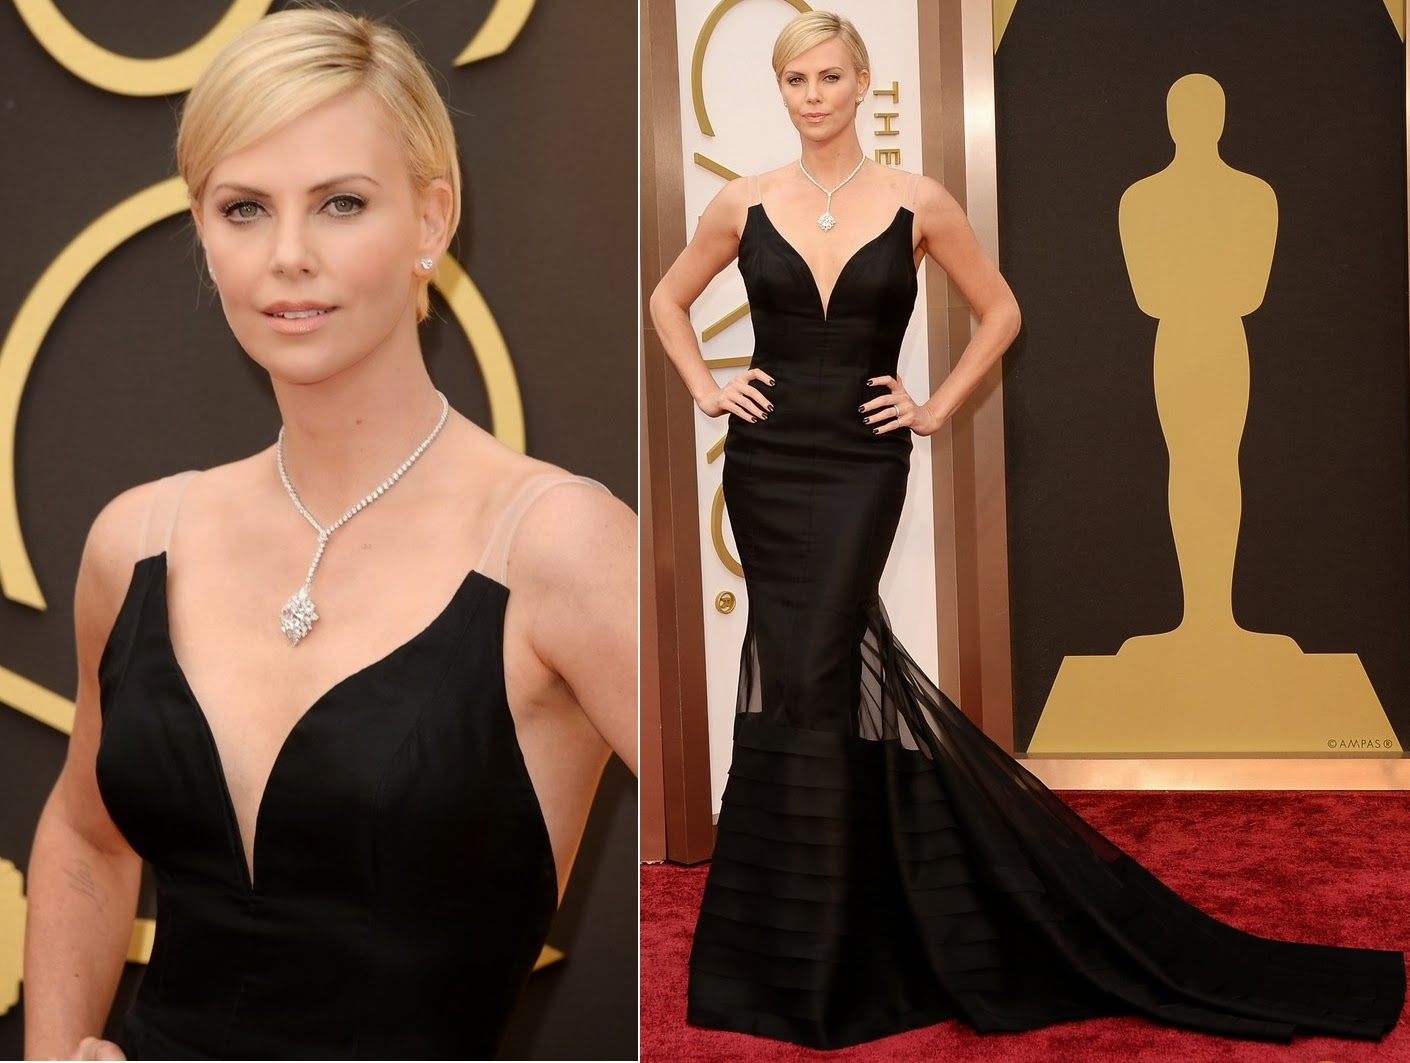 charlize-theron-stuns-in-dior-on-oscars-2014-red-carpet-02